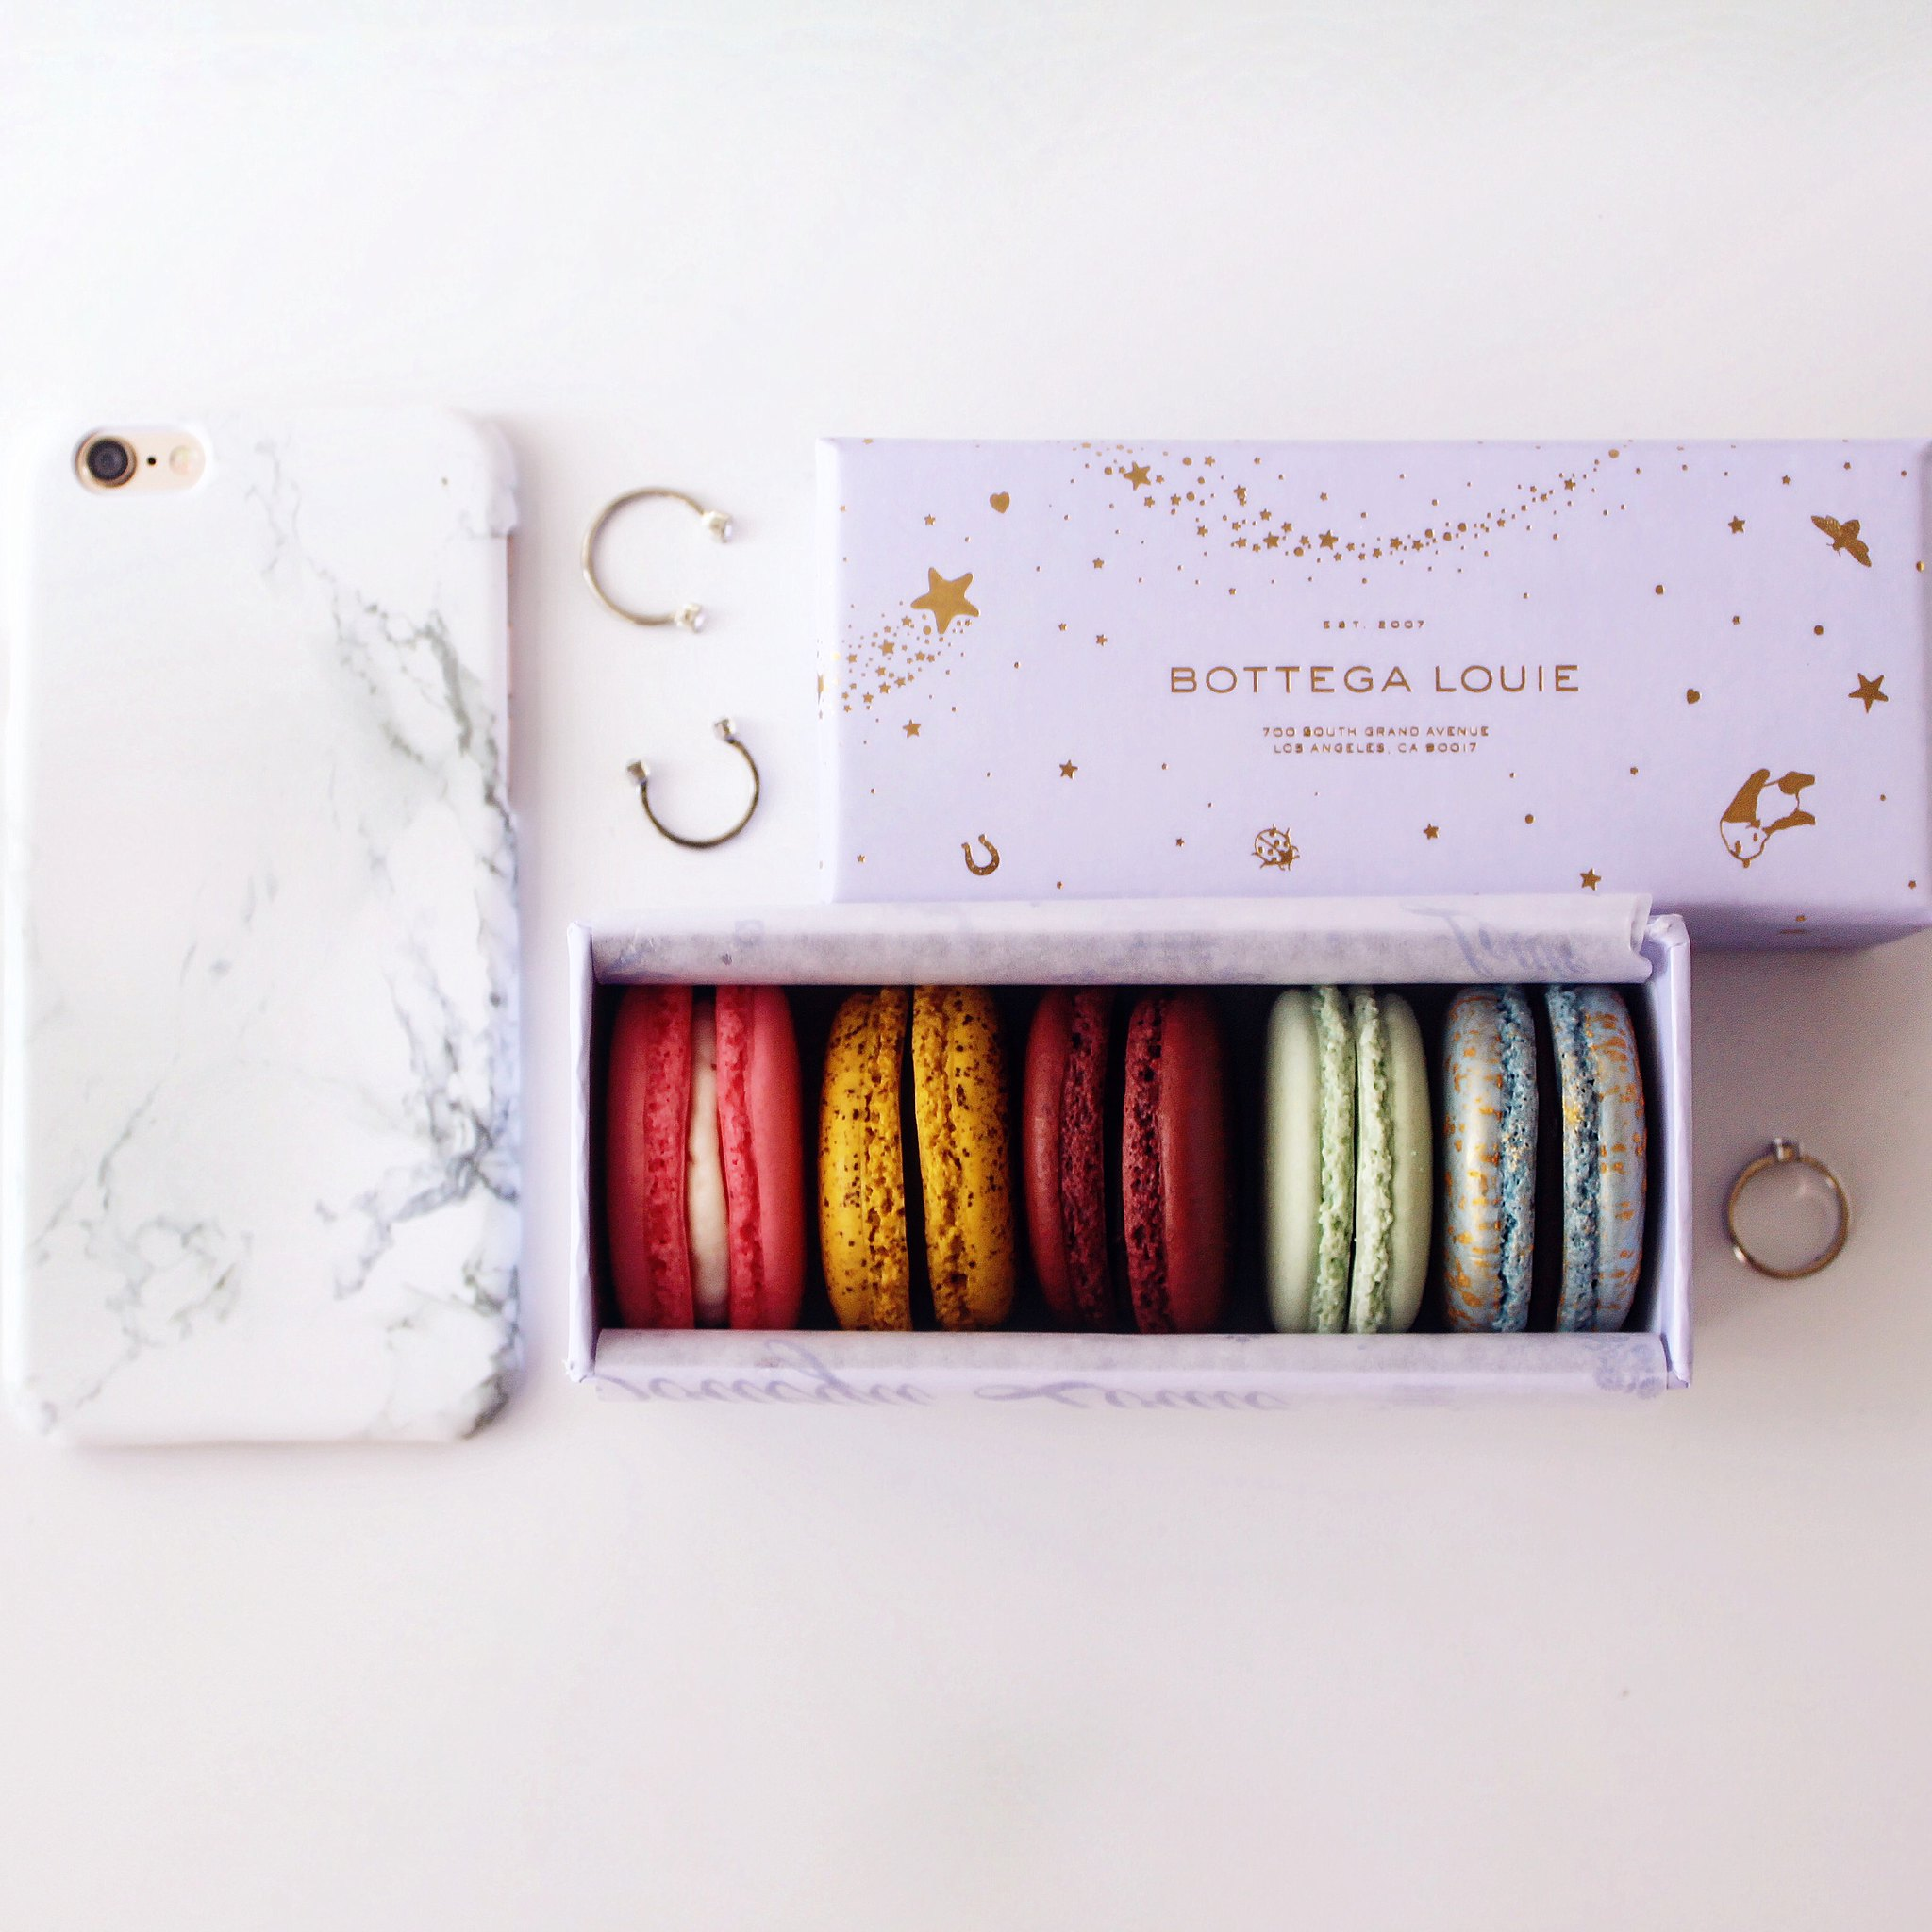 8716-bottega-louie-macarons